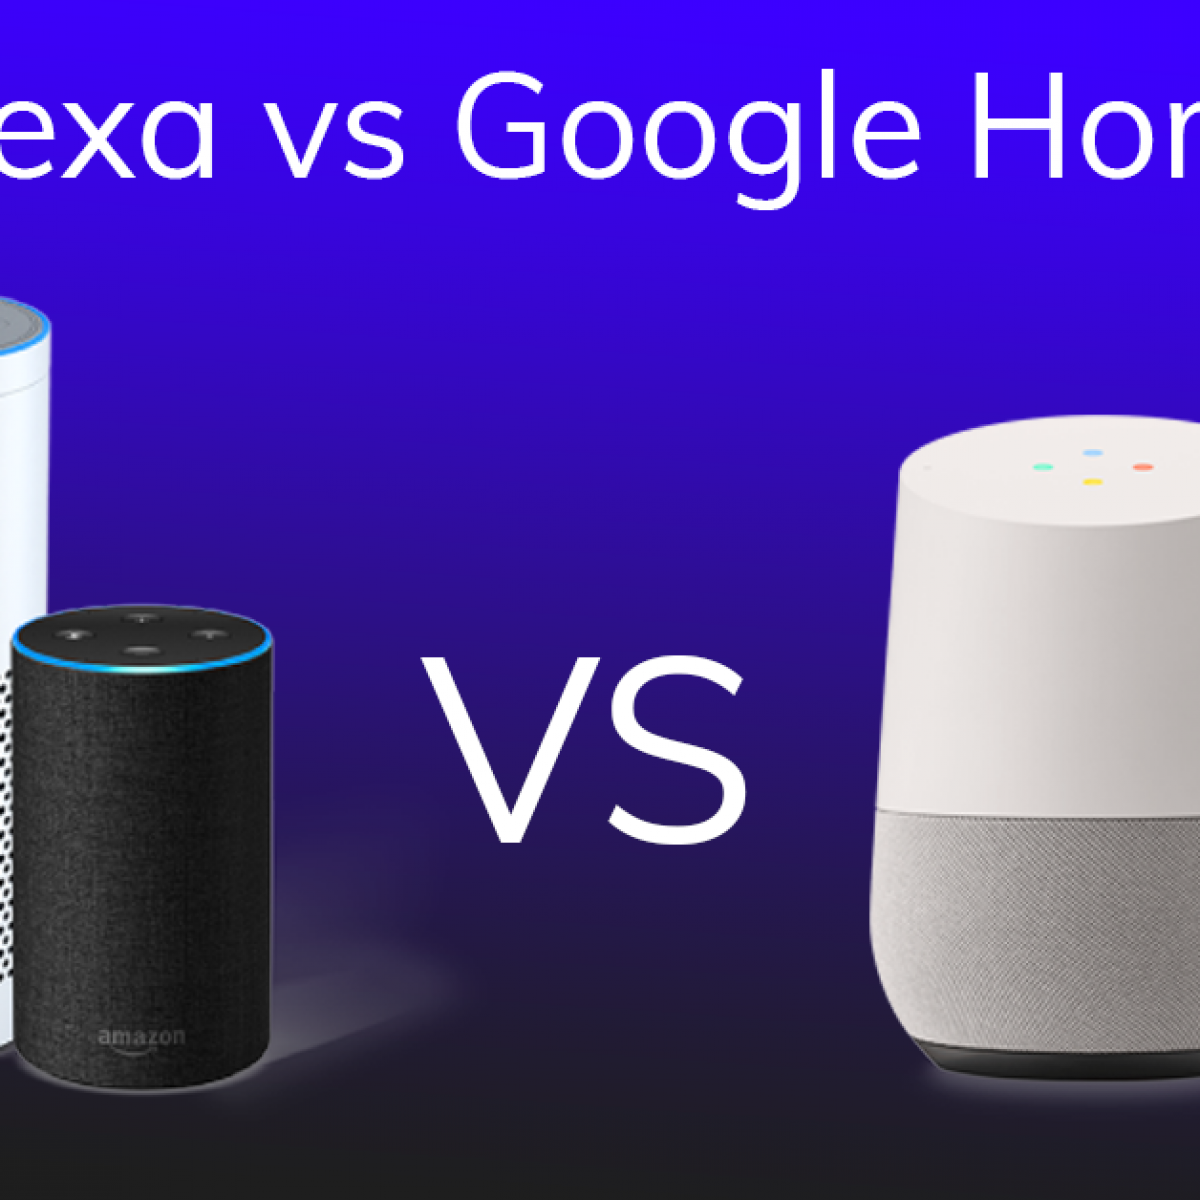 Alexa vs Google Home: Why Alexa is Better